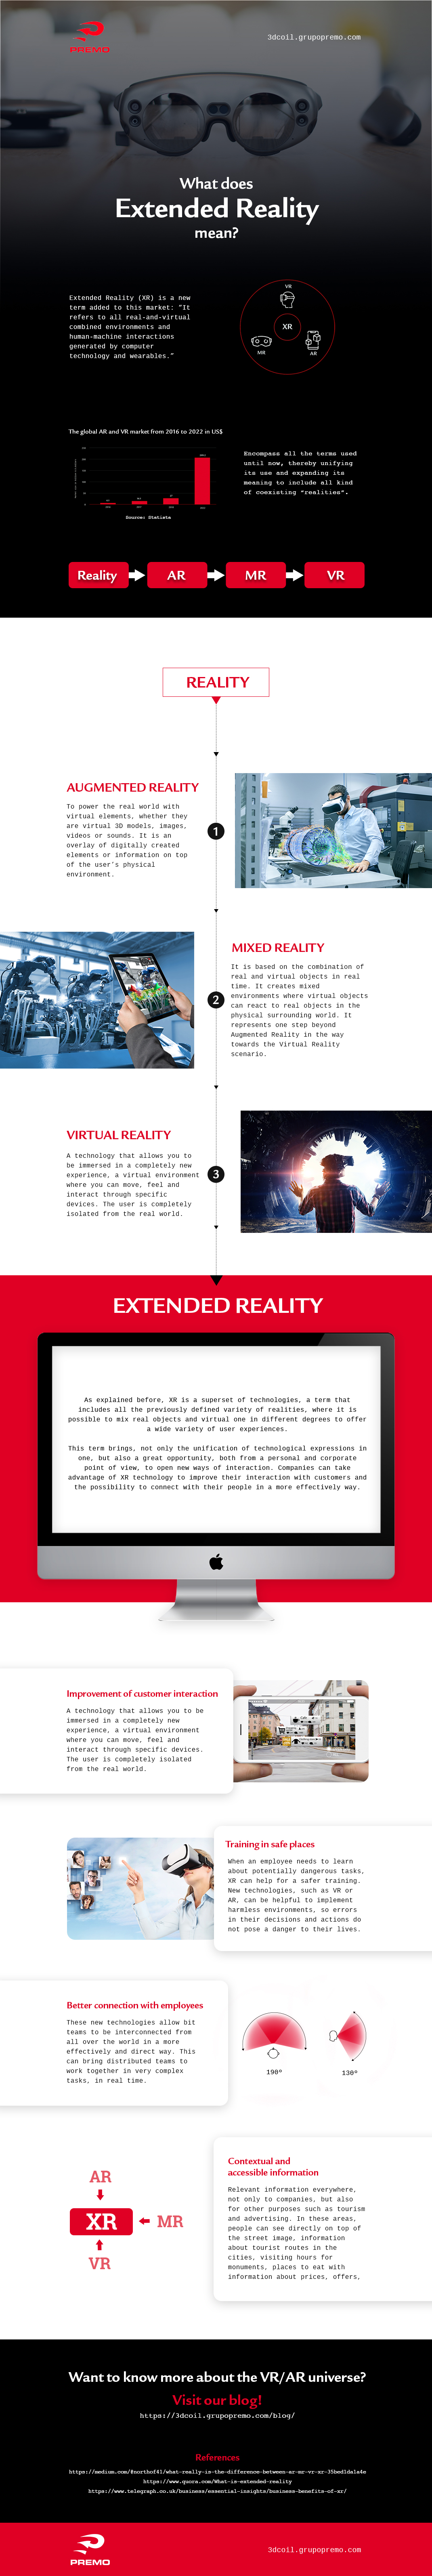 Infographic Extended Reality